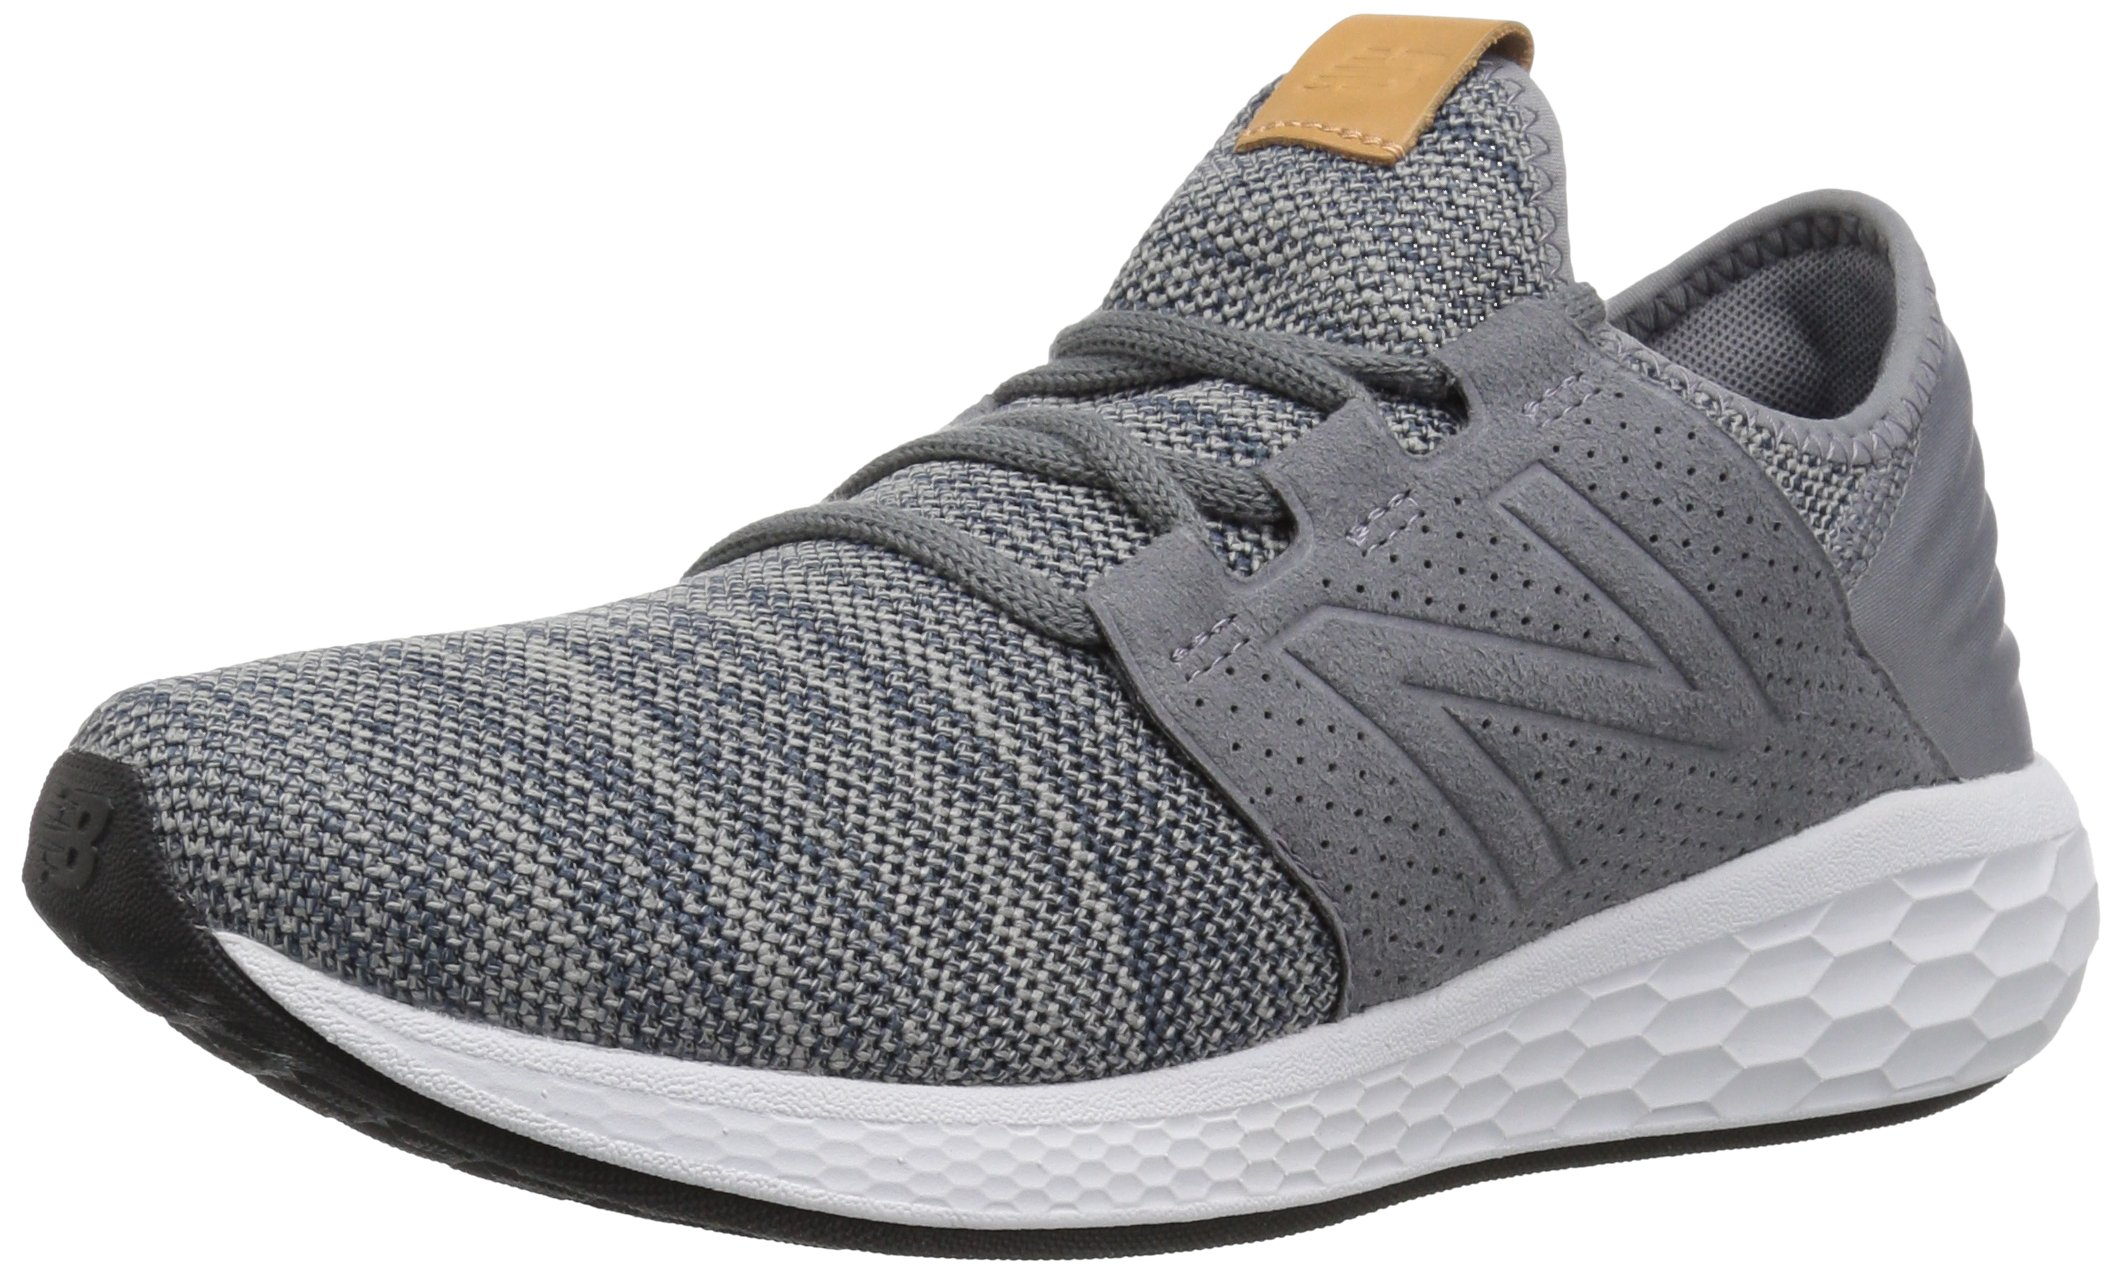 New Balance Men's Cruz V2 Fresh Foam Running Shoe, Gunmetal / Thunder, 7 D US by New Balance (Image #1)